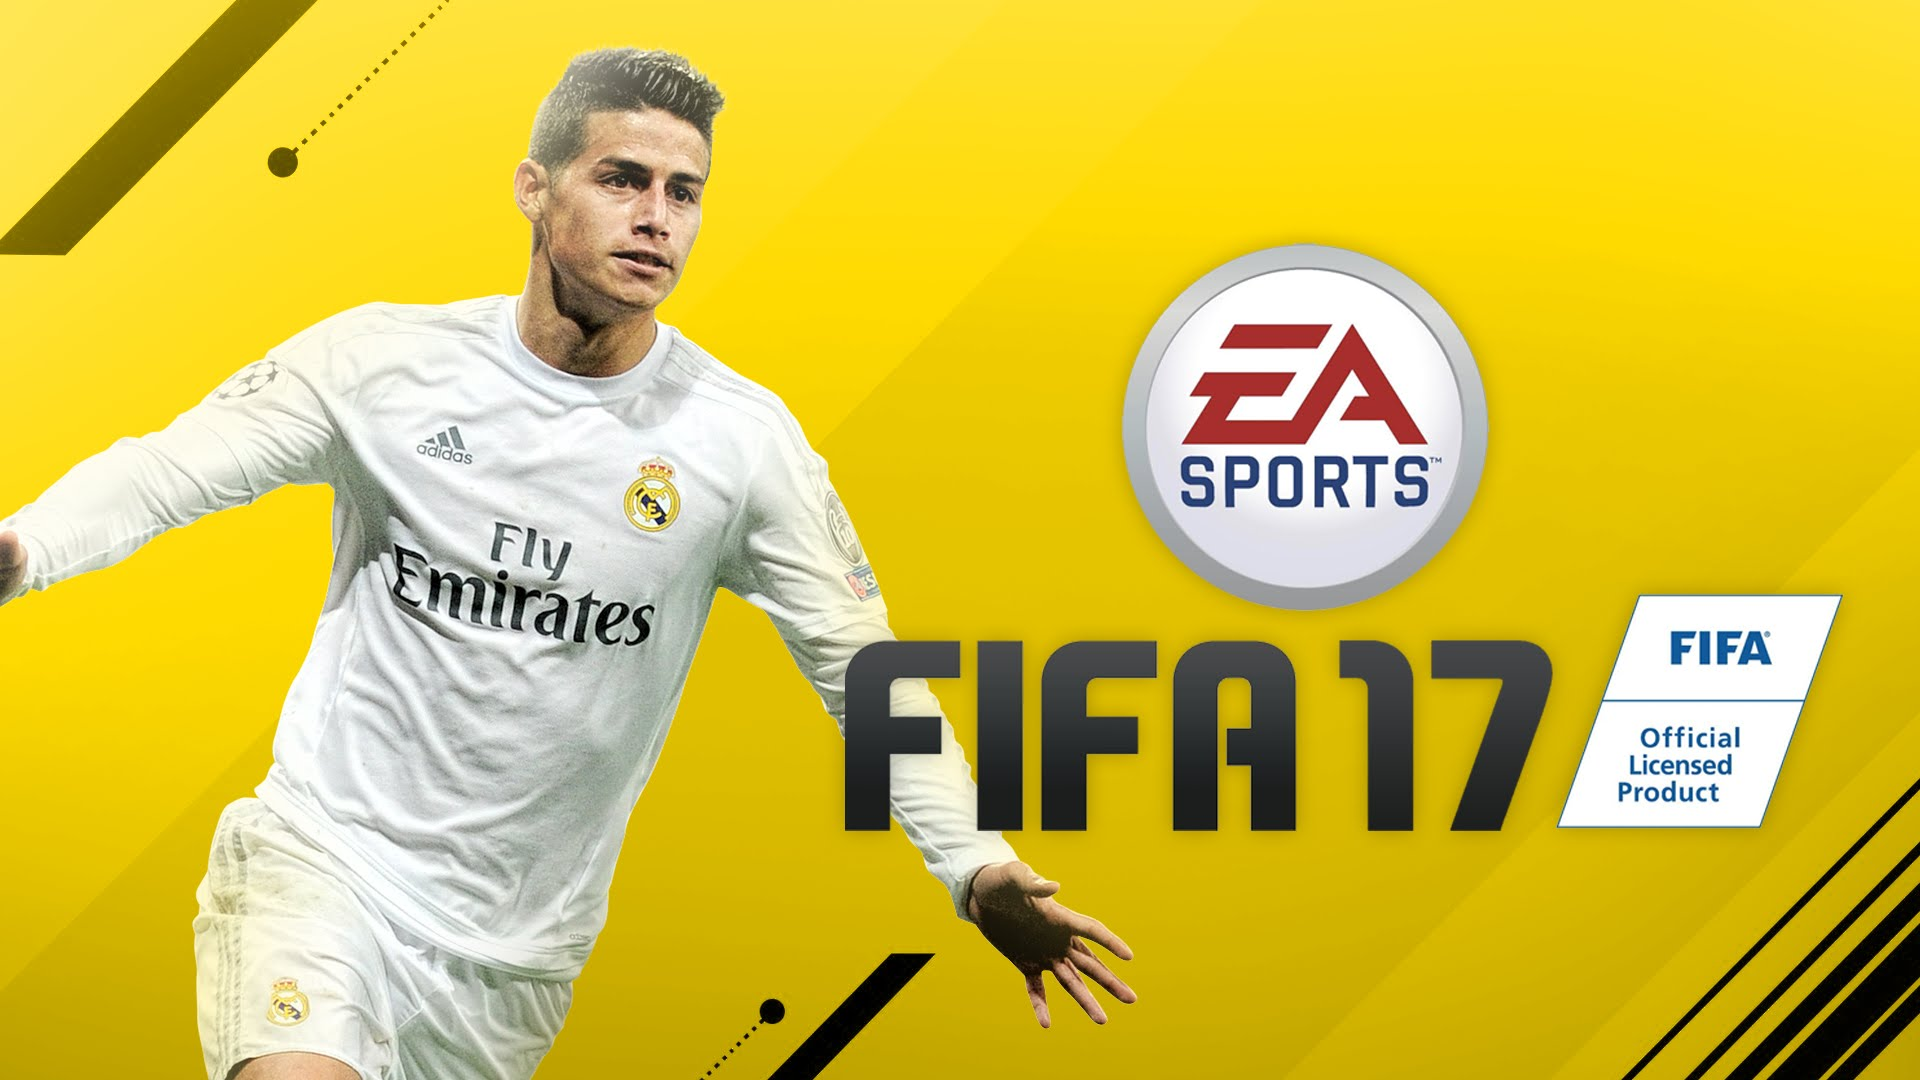 Fifa 17 wallpapers wallpapersafari 1920x1080 fifa 17 hd wallpapers full hd pictures voltagebd Gallery